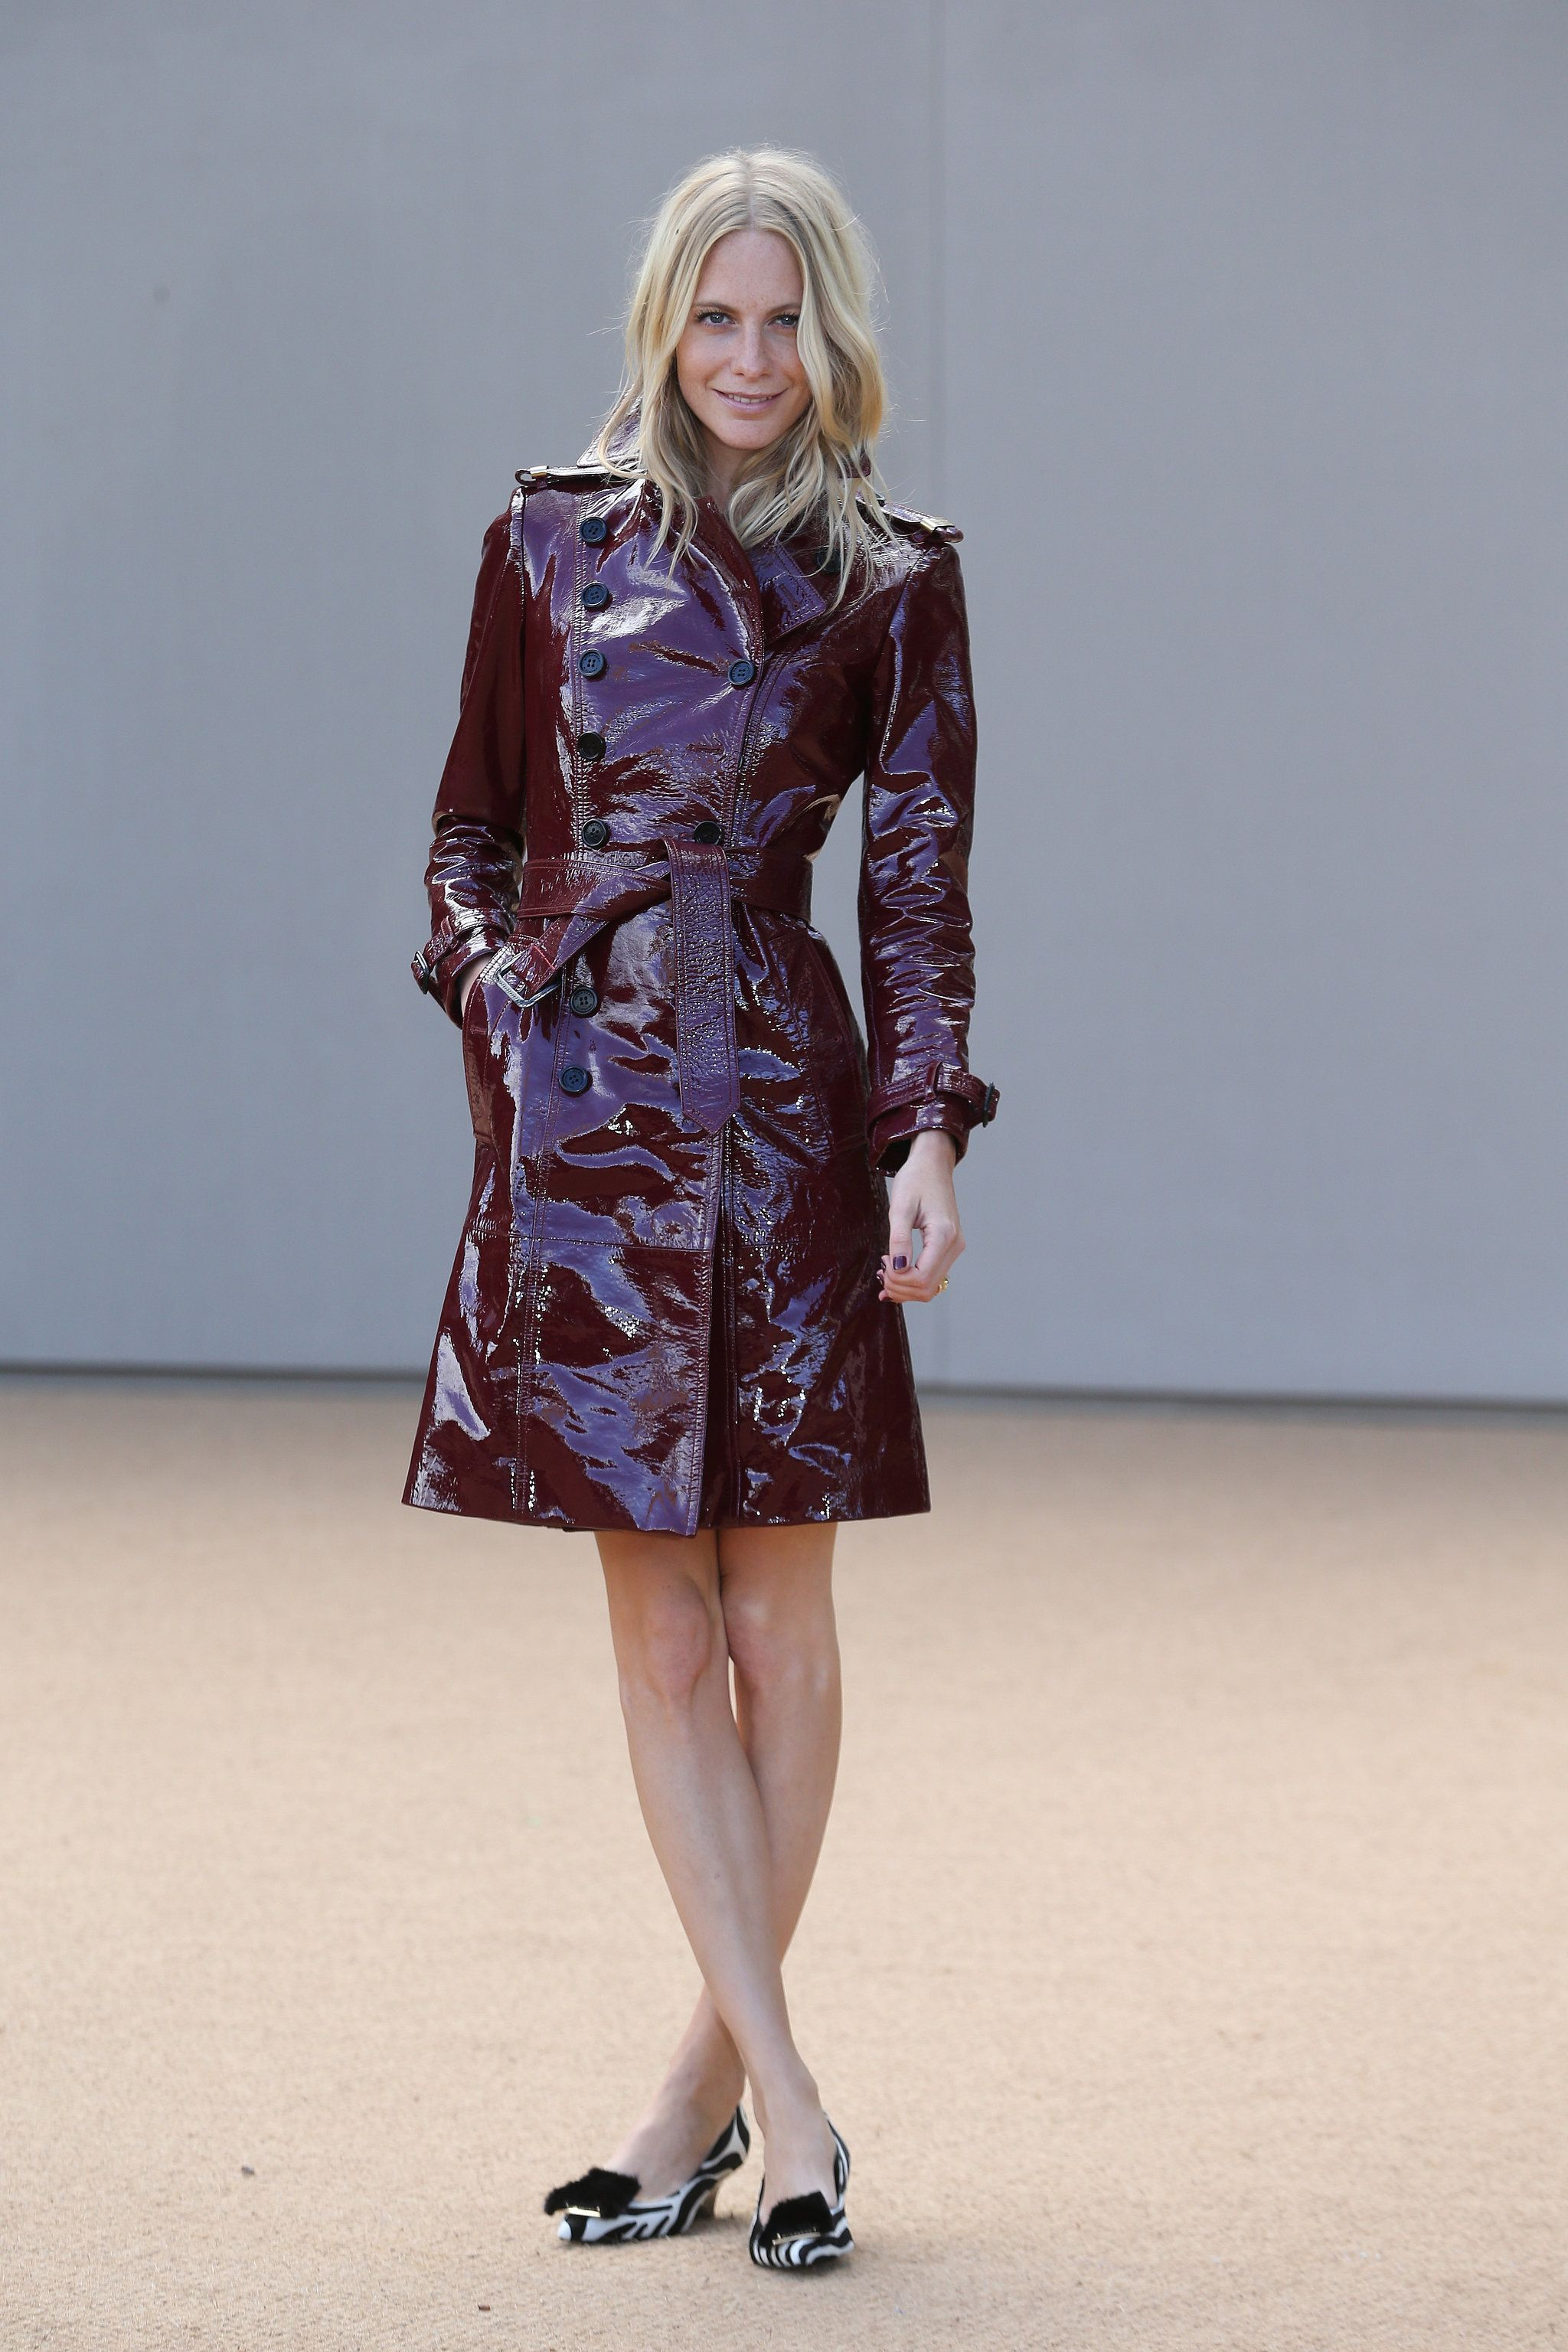 Lack Kleidung Poppy Delevingne In Einem Trench Coat Fashion